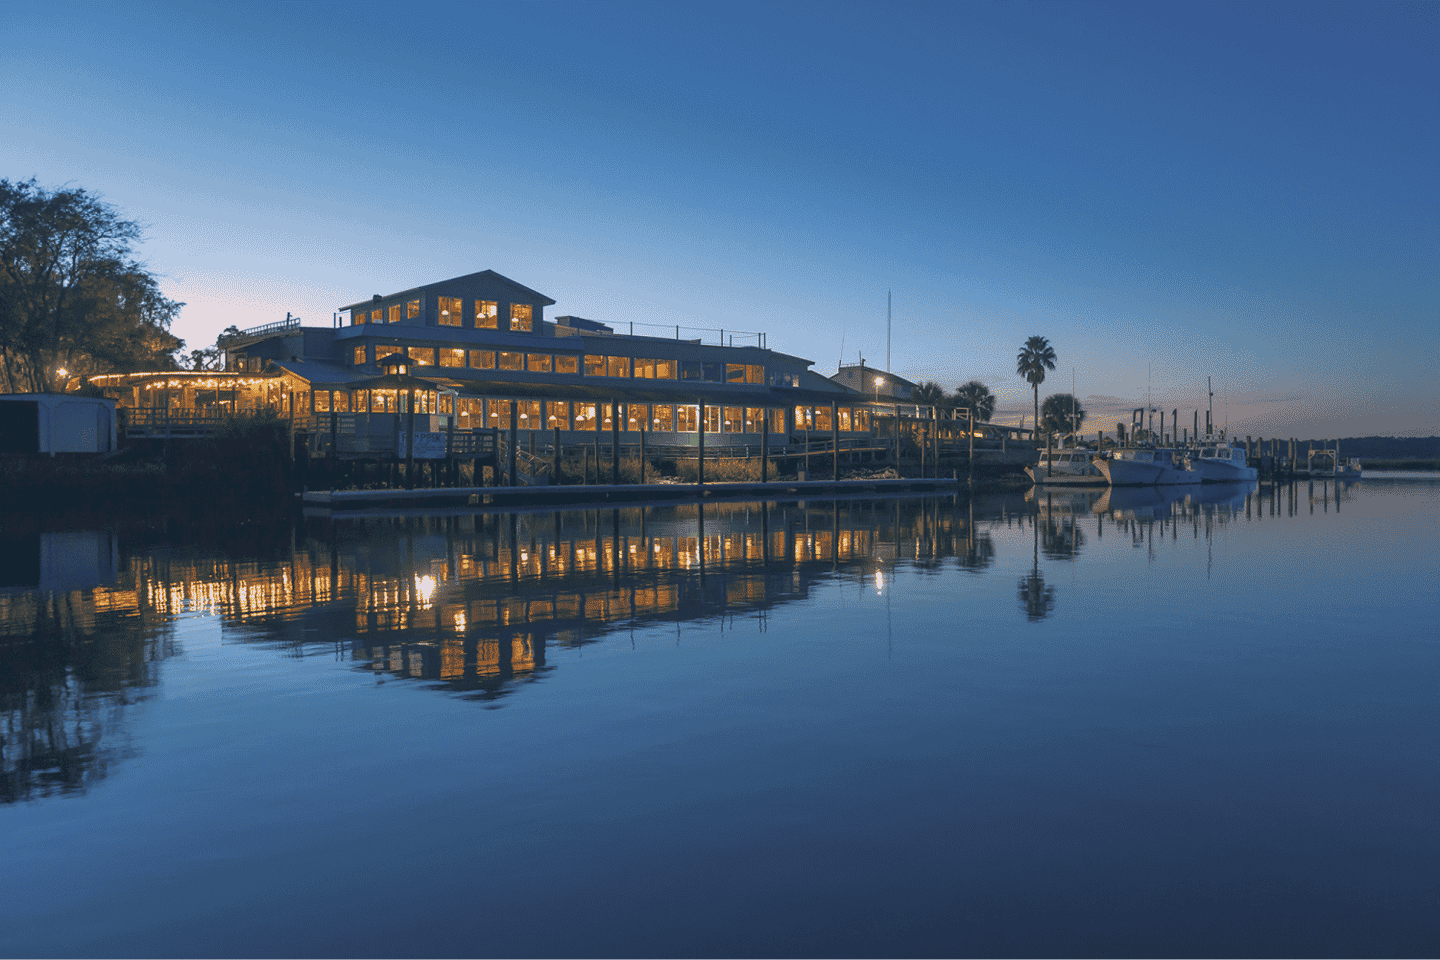 Waterfront Dining at Fish Dock Restaurant